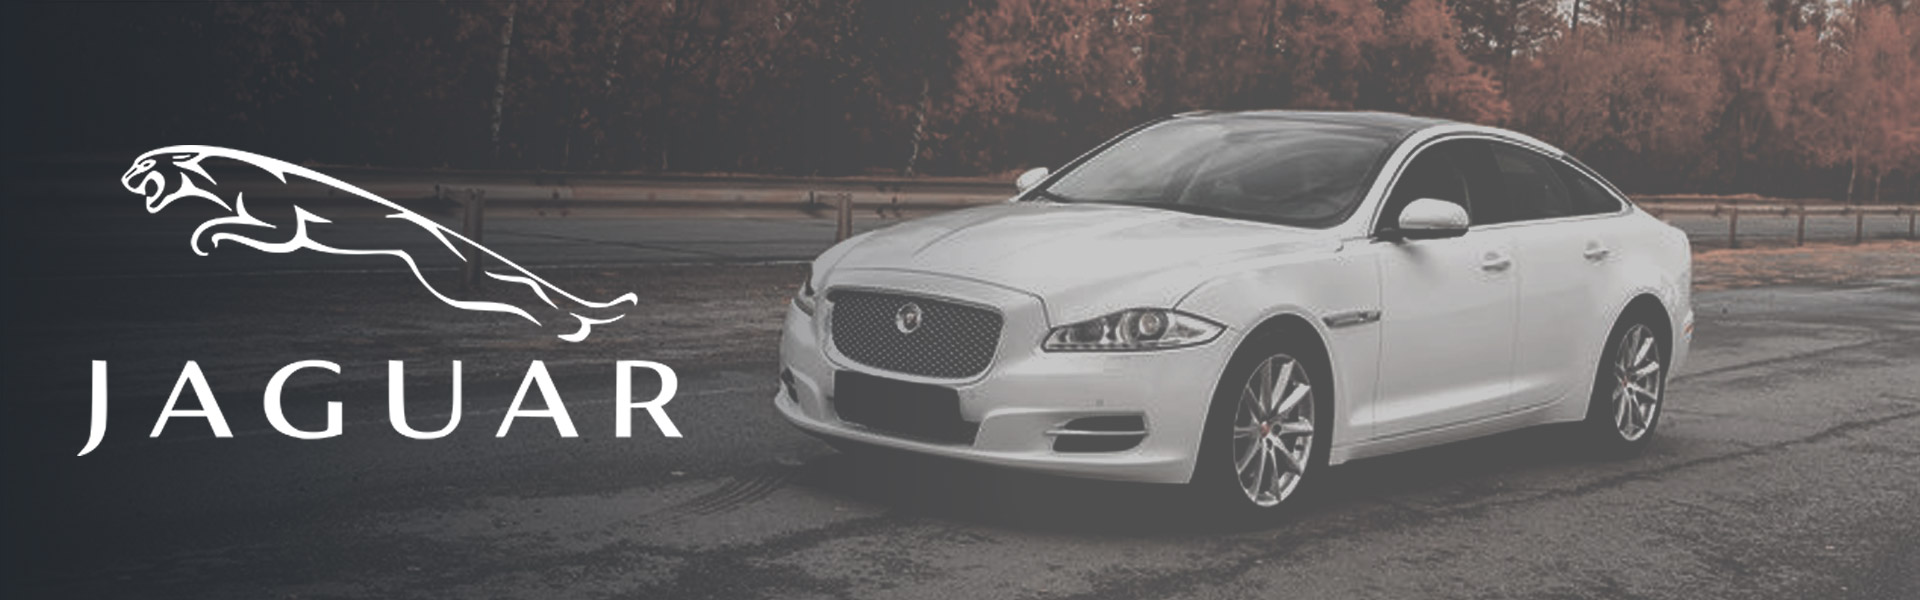 Jaguar Car Servicing Rotherham